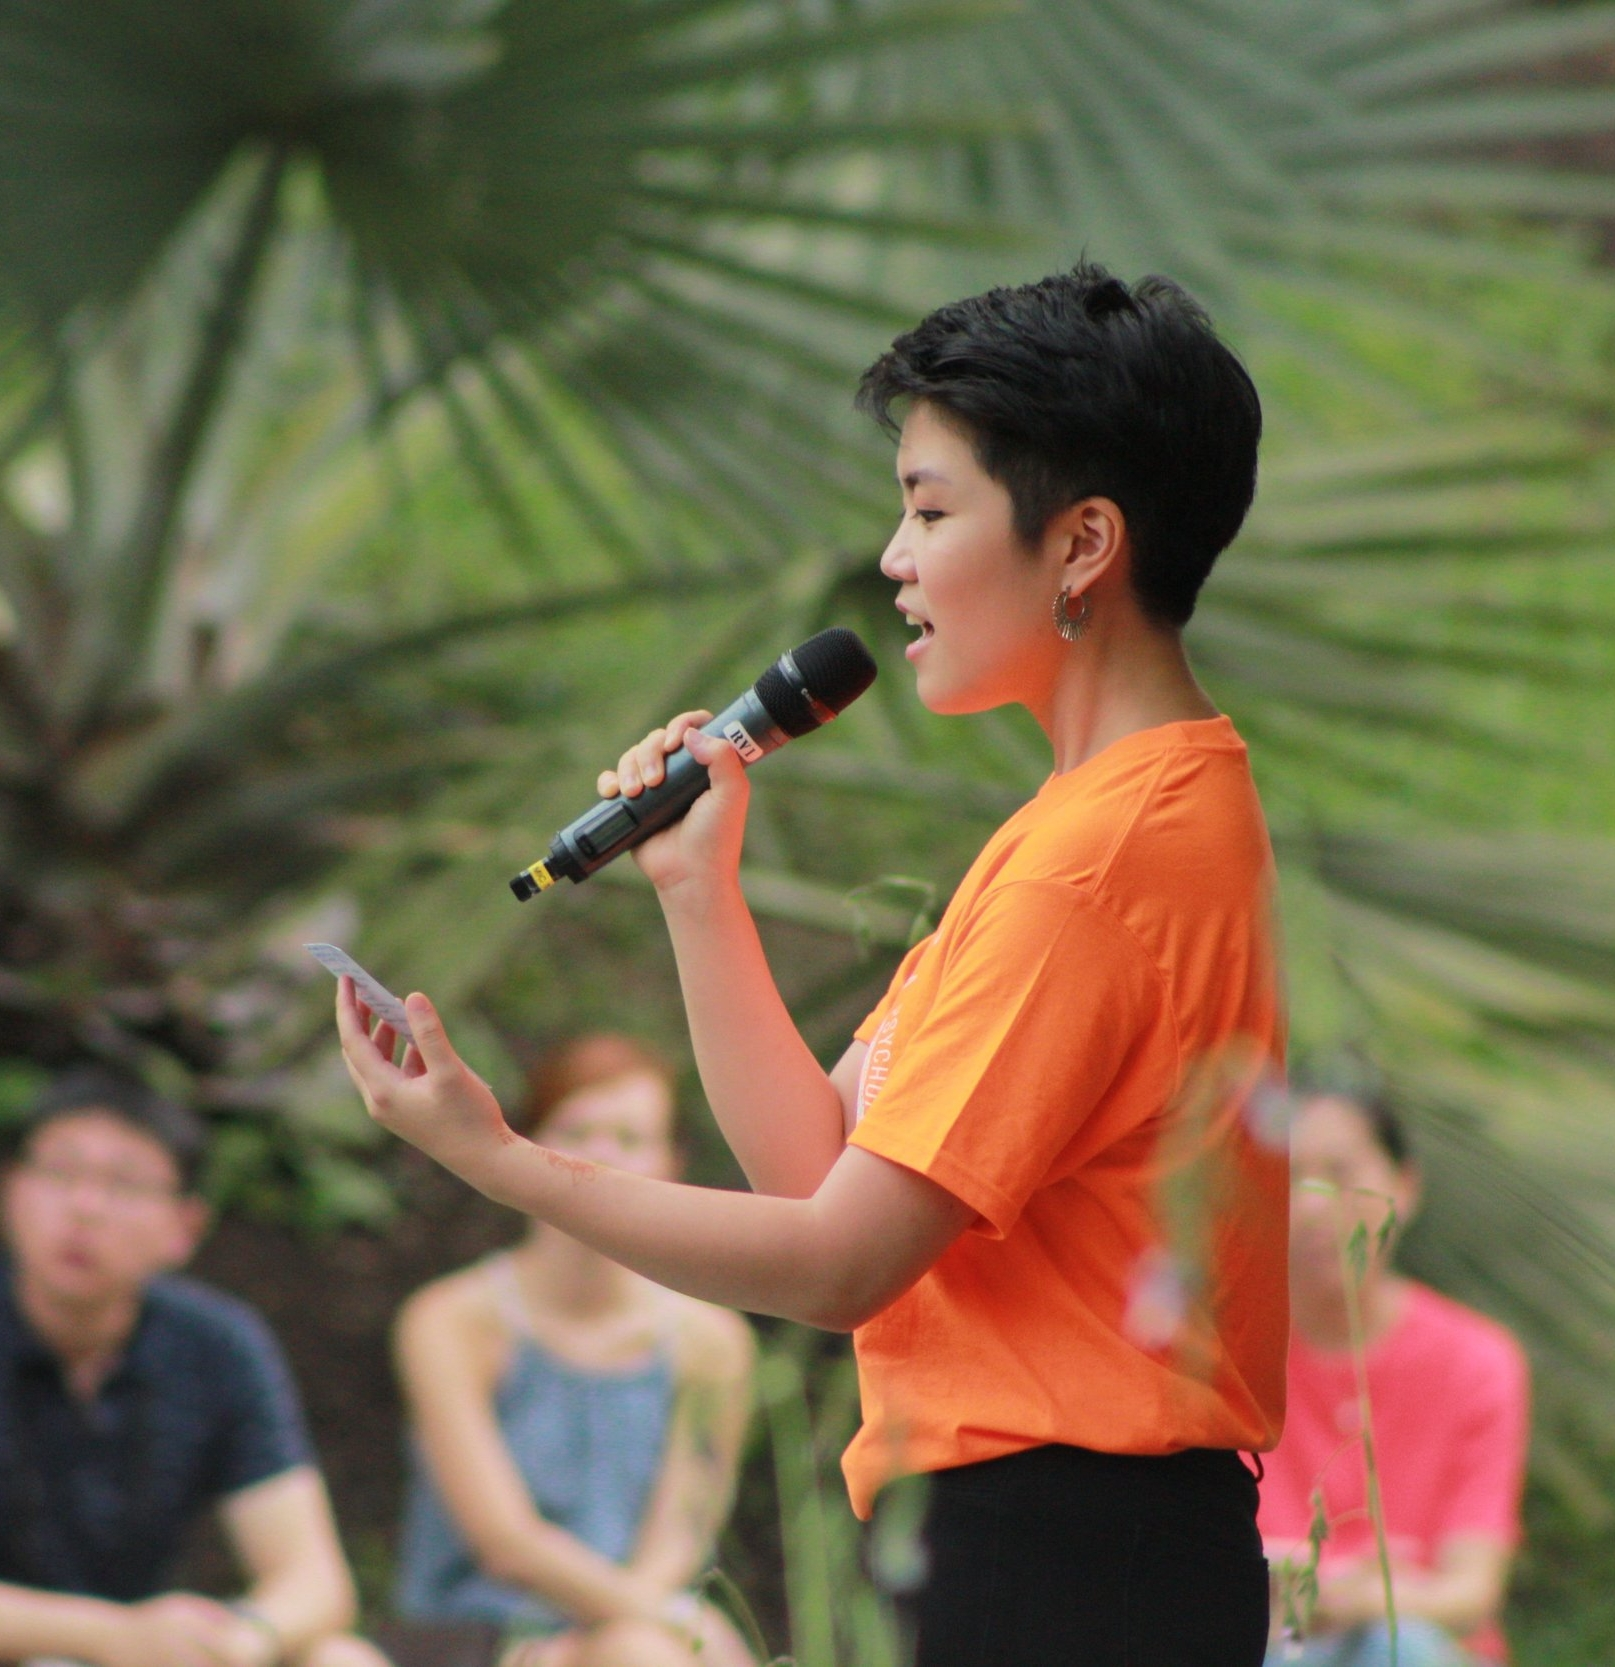 Xiangning emceeing for  Beethoven im Garten  at the Singapore Botanic Gardens Shaw Foundation Symphony Stage